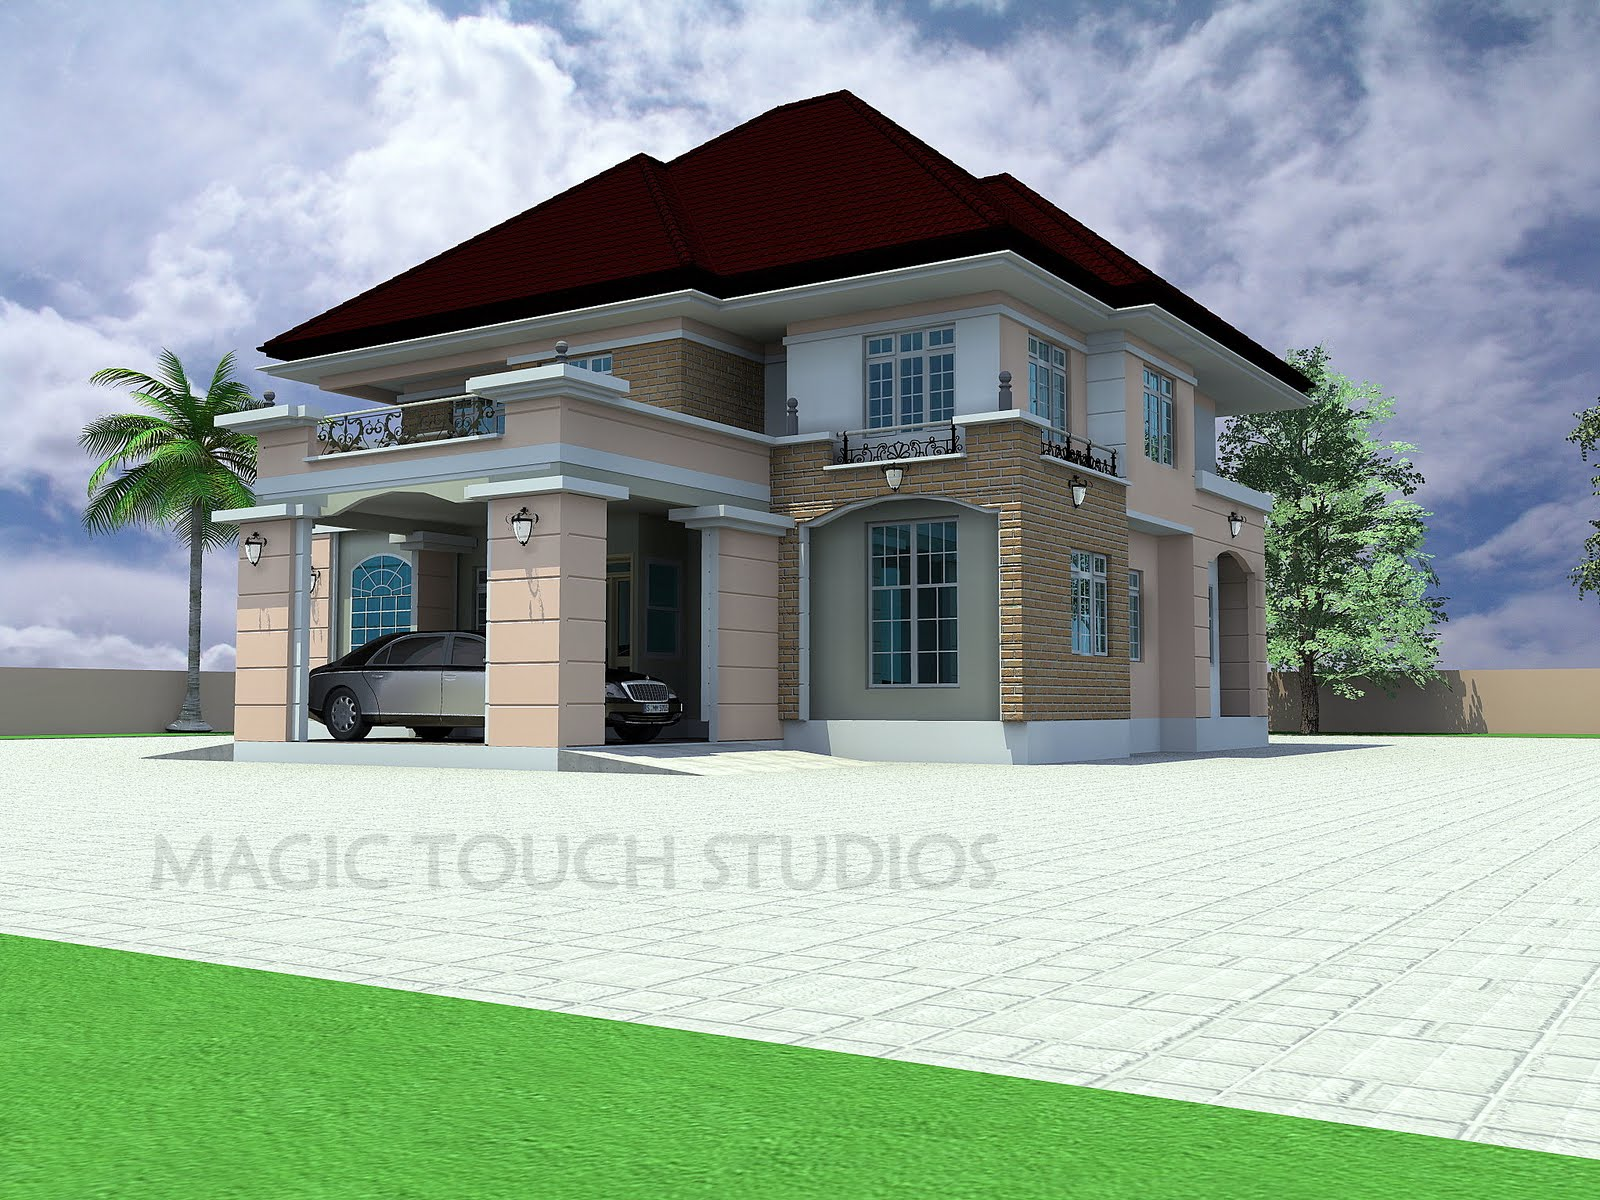 5 bedroom duplex house plans in nigeria house plan 2017 for Beautiful 5 bedroom house plans with pictures